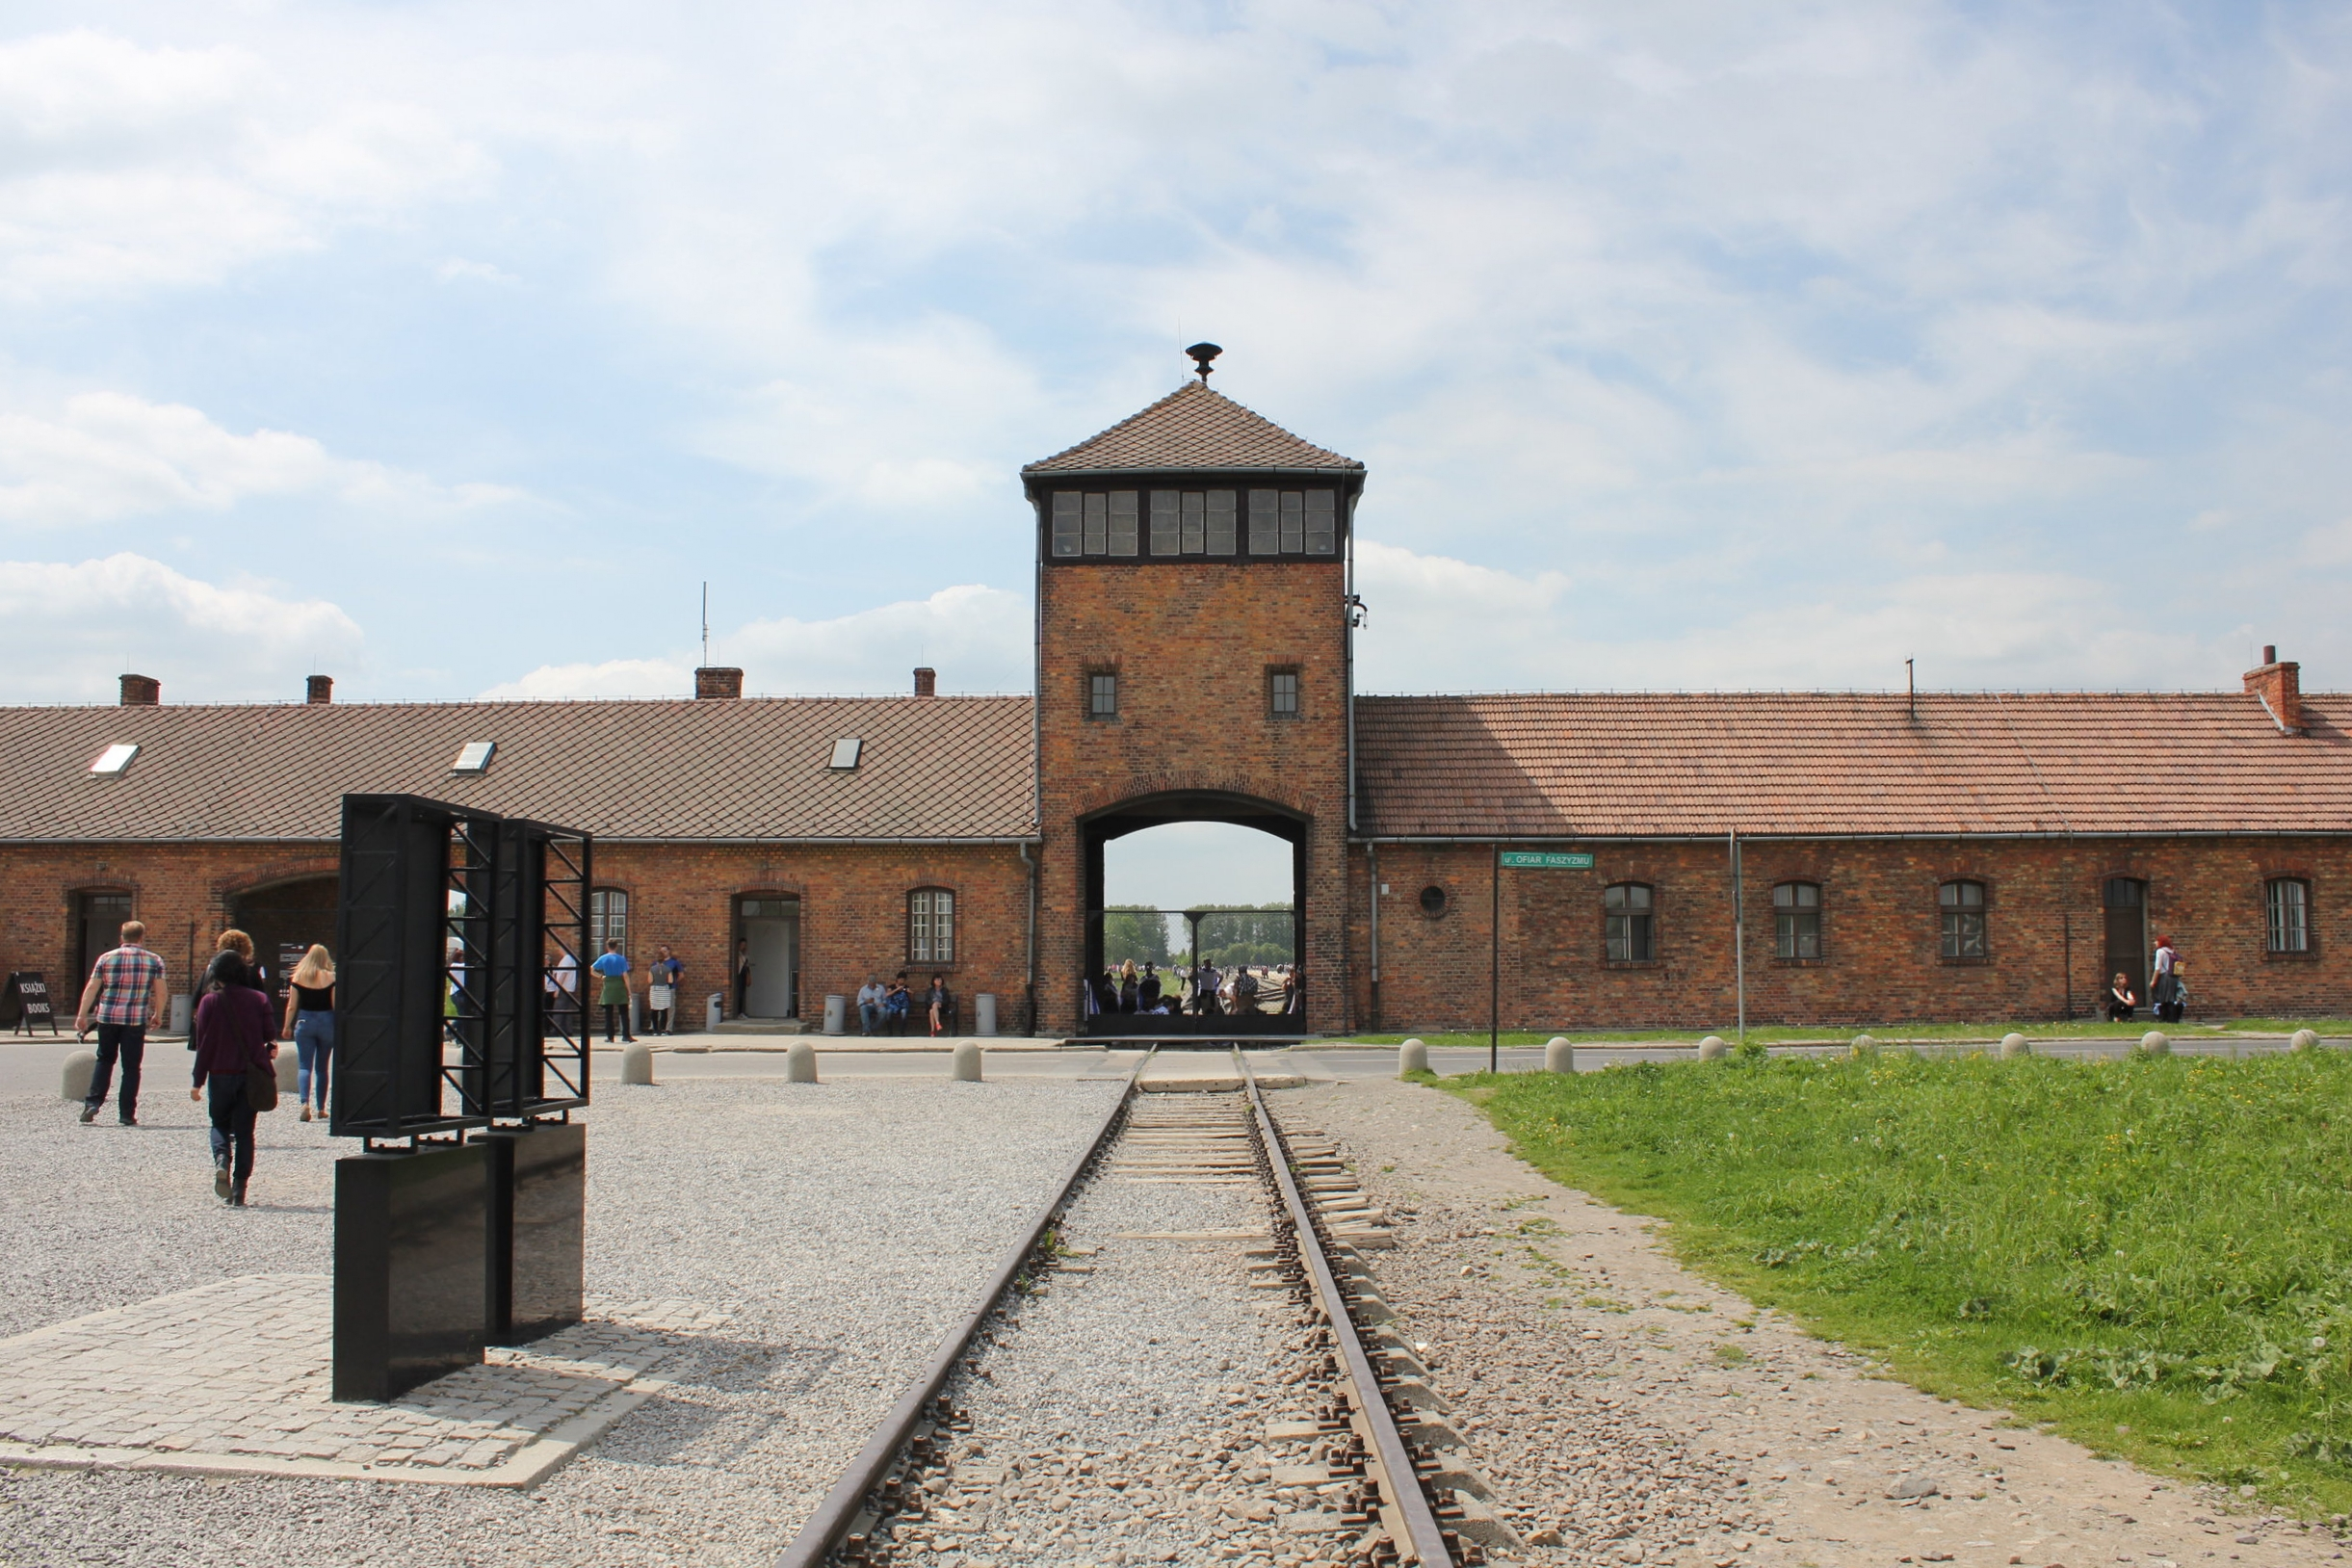 """The """"death gate"""" at Auschwitz II–Birkenau: these were the gates that greeted 1.3 million Holocaust victims that perished at the Birkenau extermination camp, including 1.1 million European Jews"""